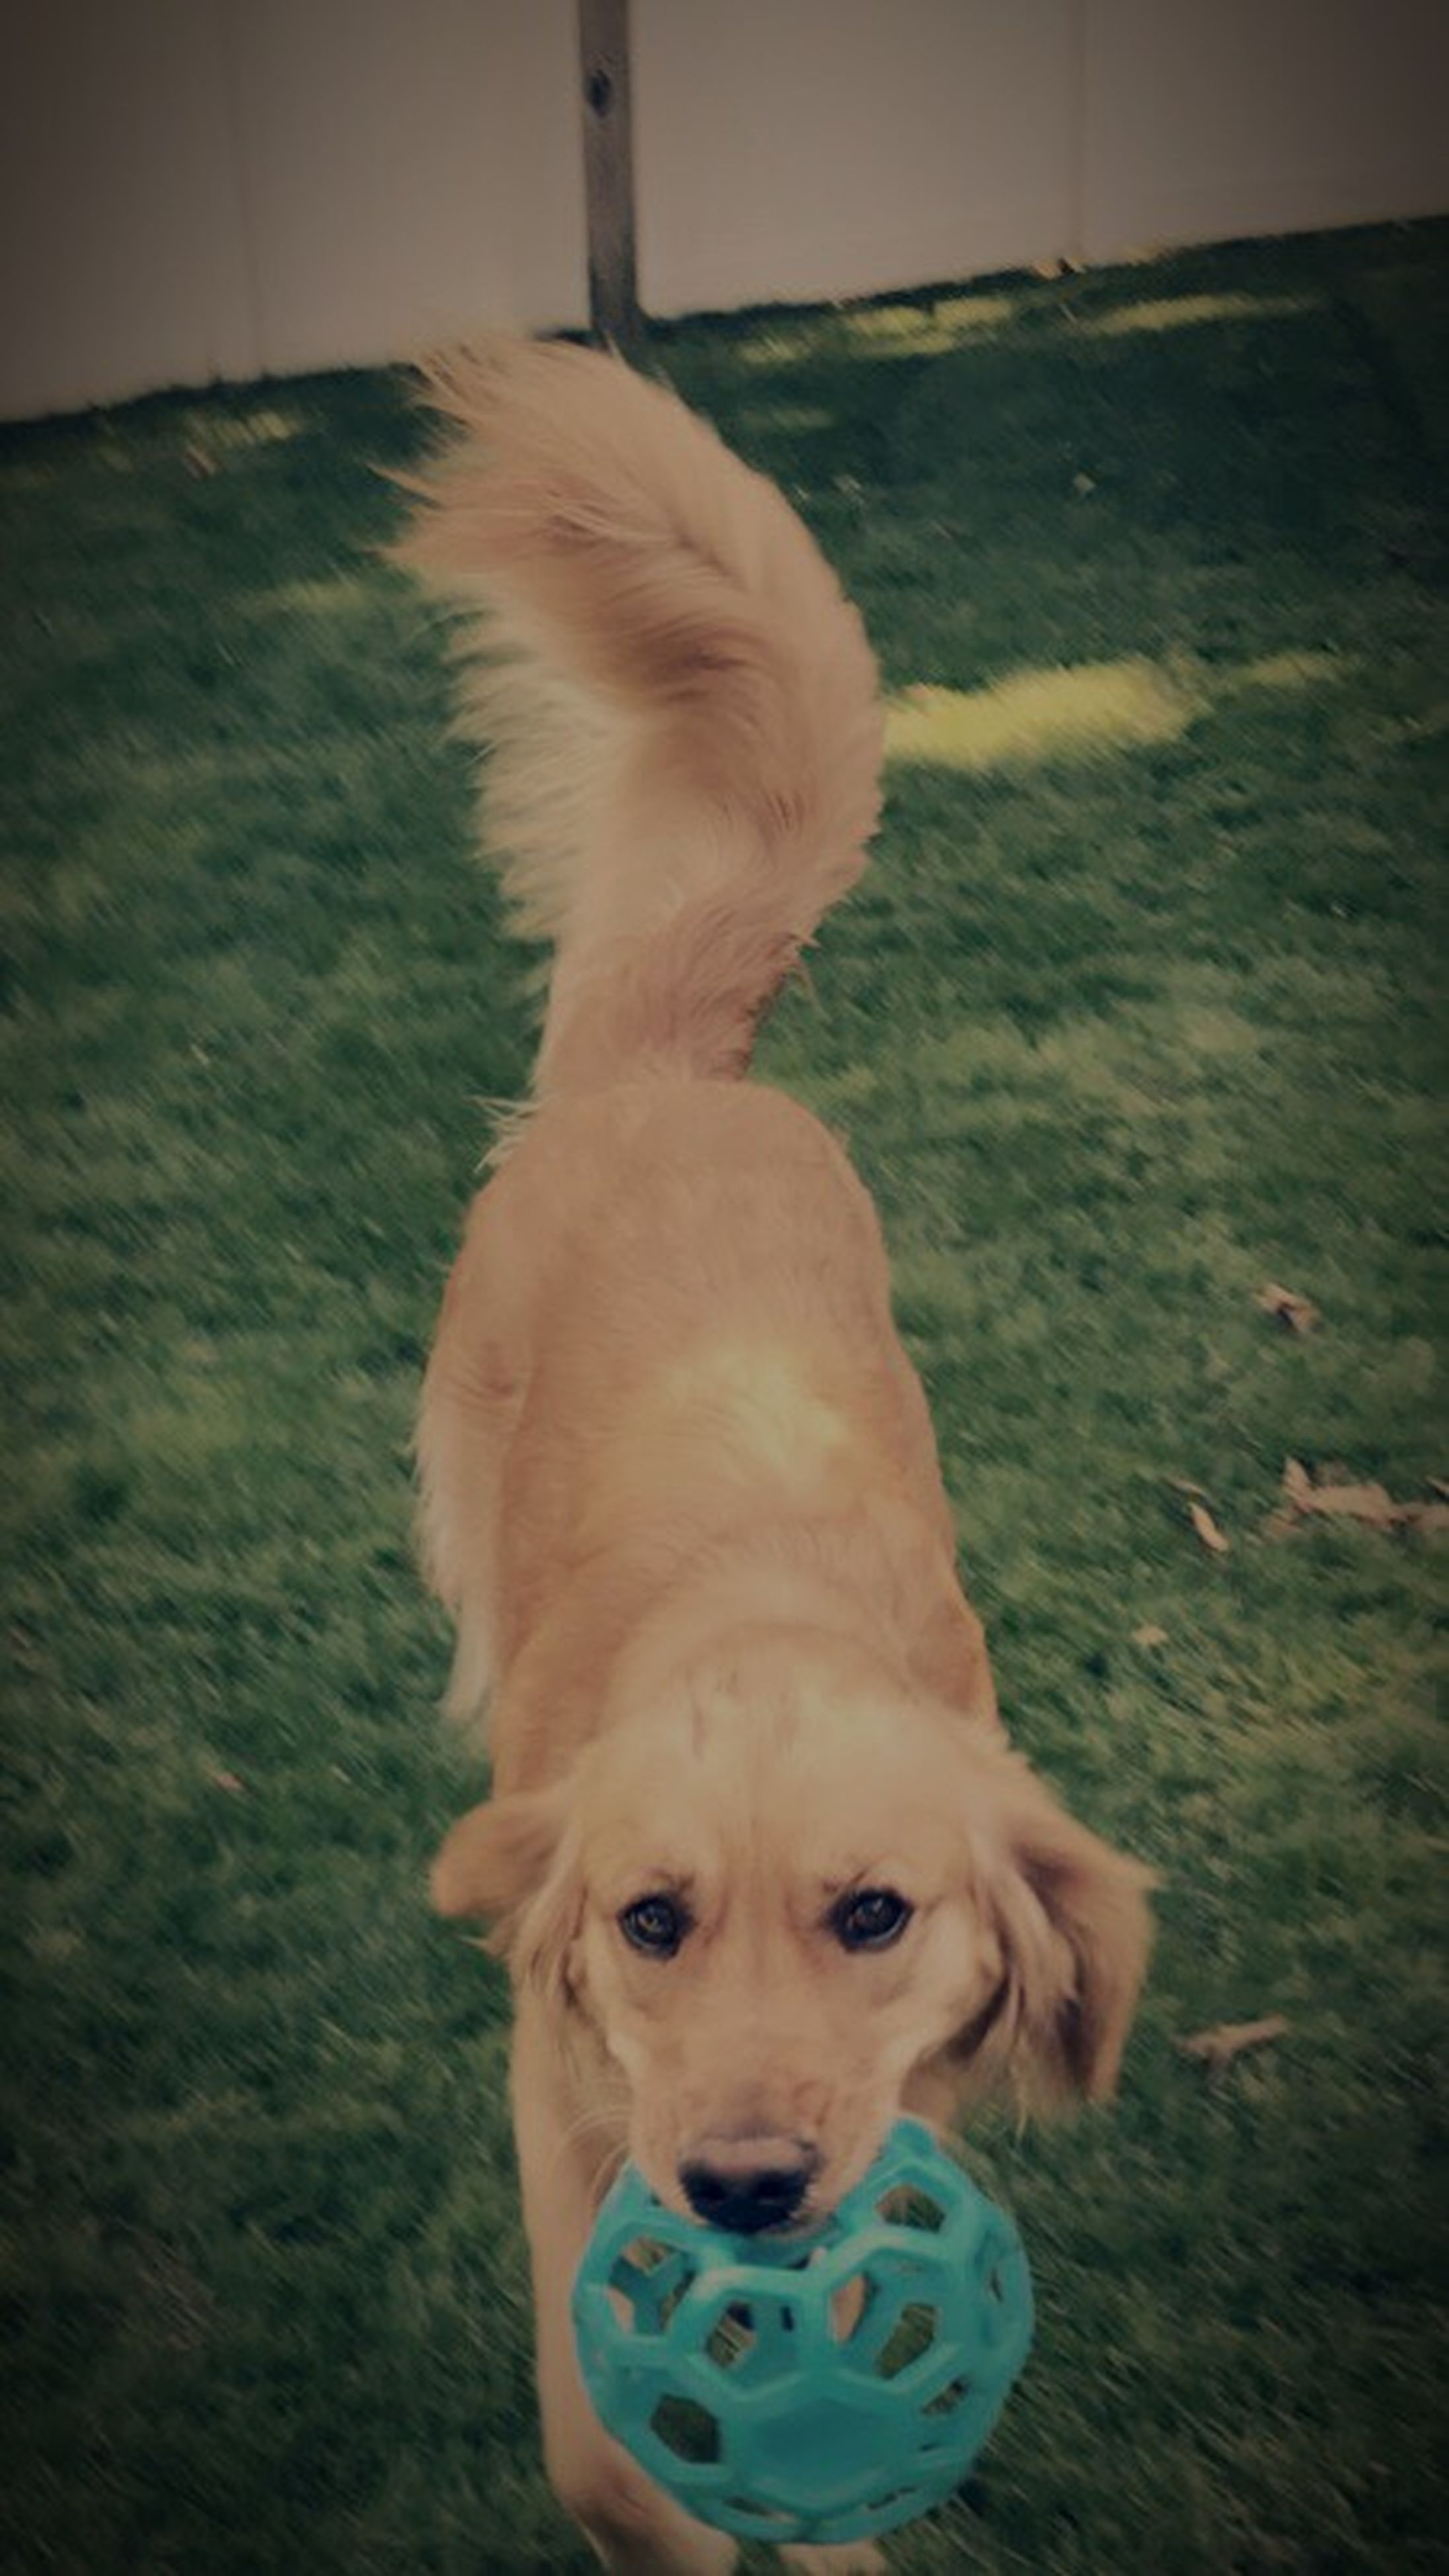 dog, pets, domestic animals, one animal, mammal, animal themes, indoors, looking at camera, portrait, no people, day, grass, close-up